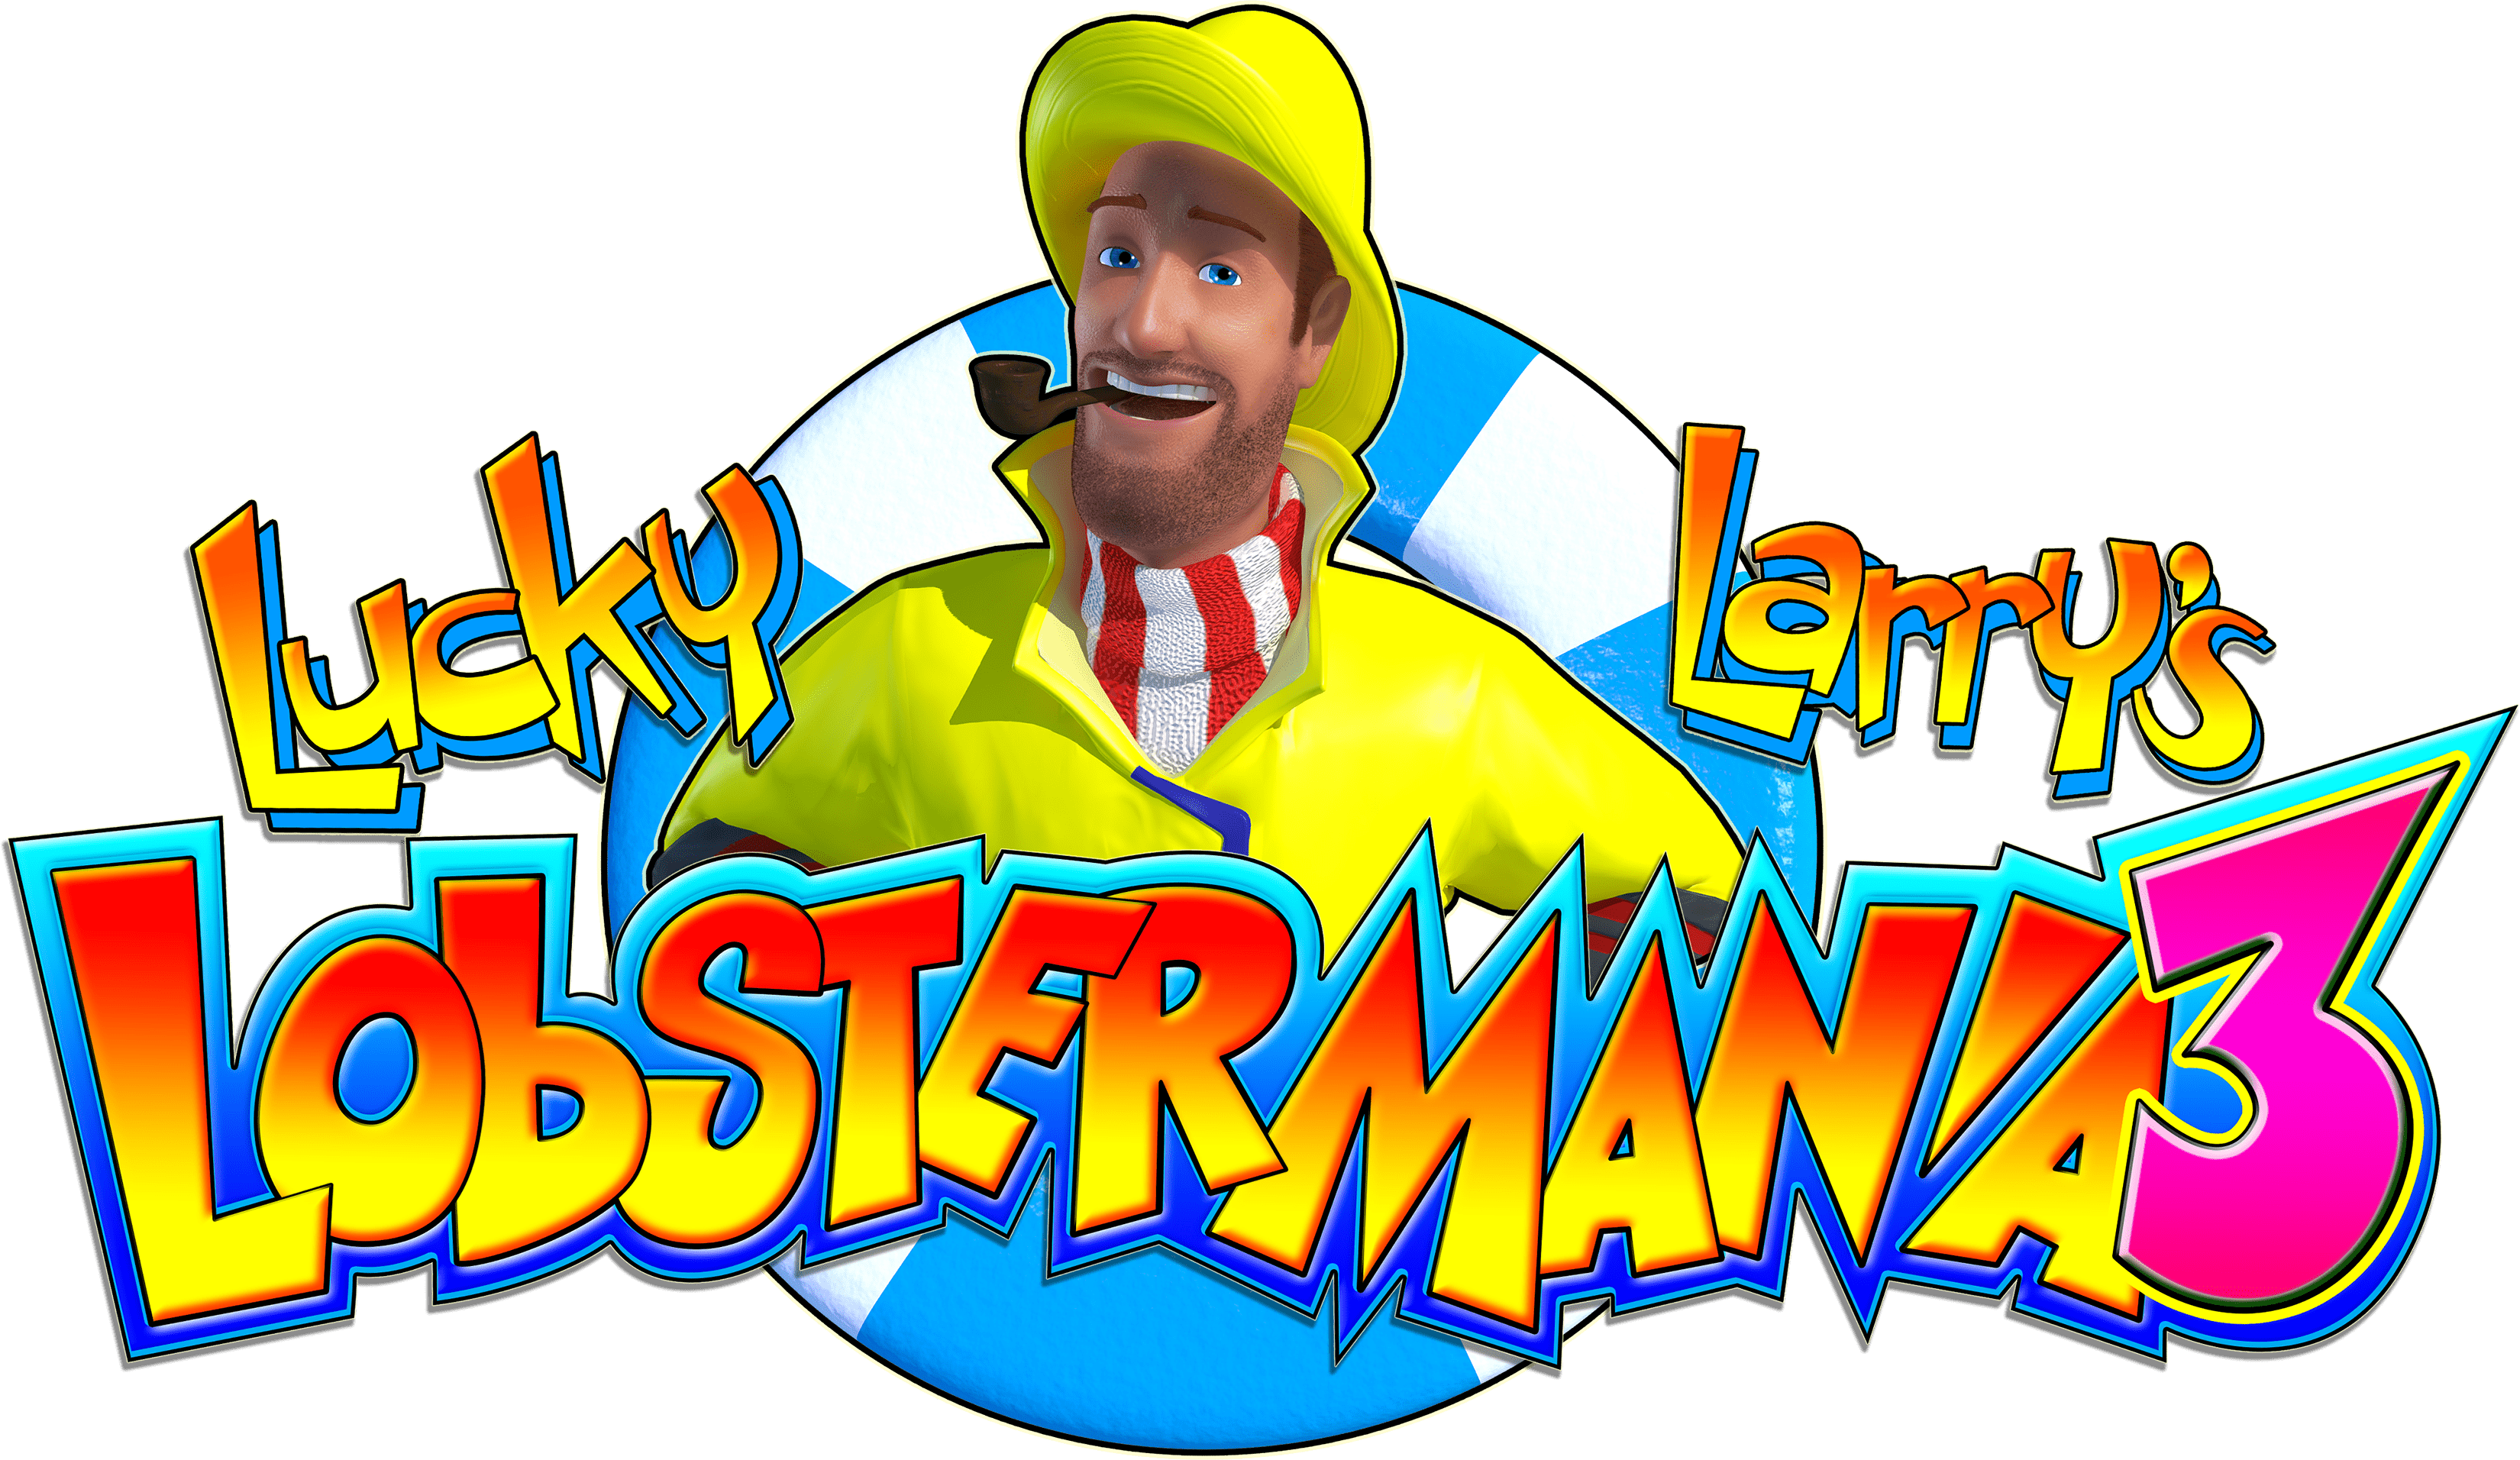 Lucky Larry Lobstermania 3